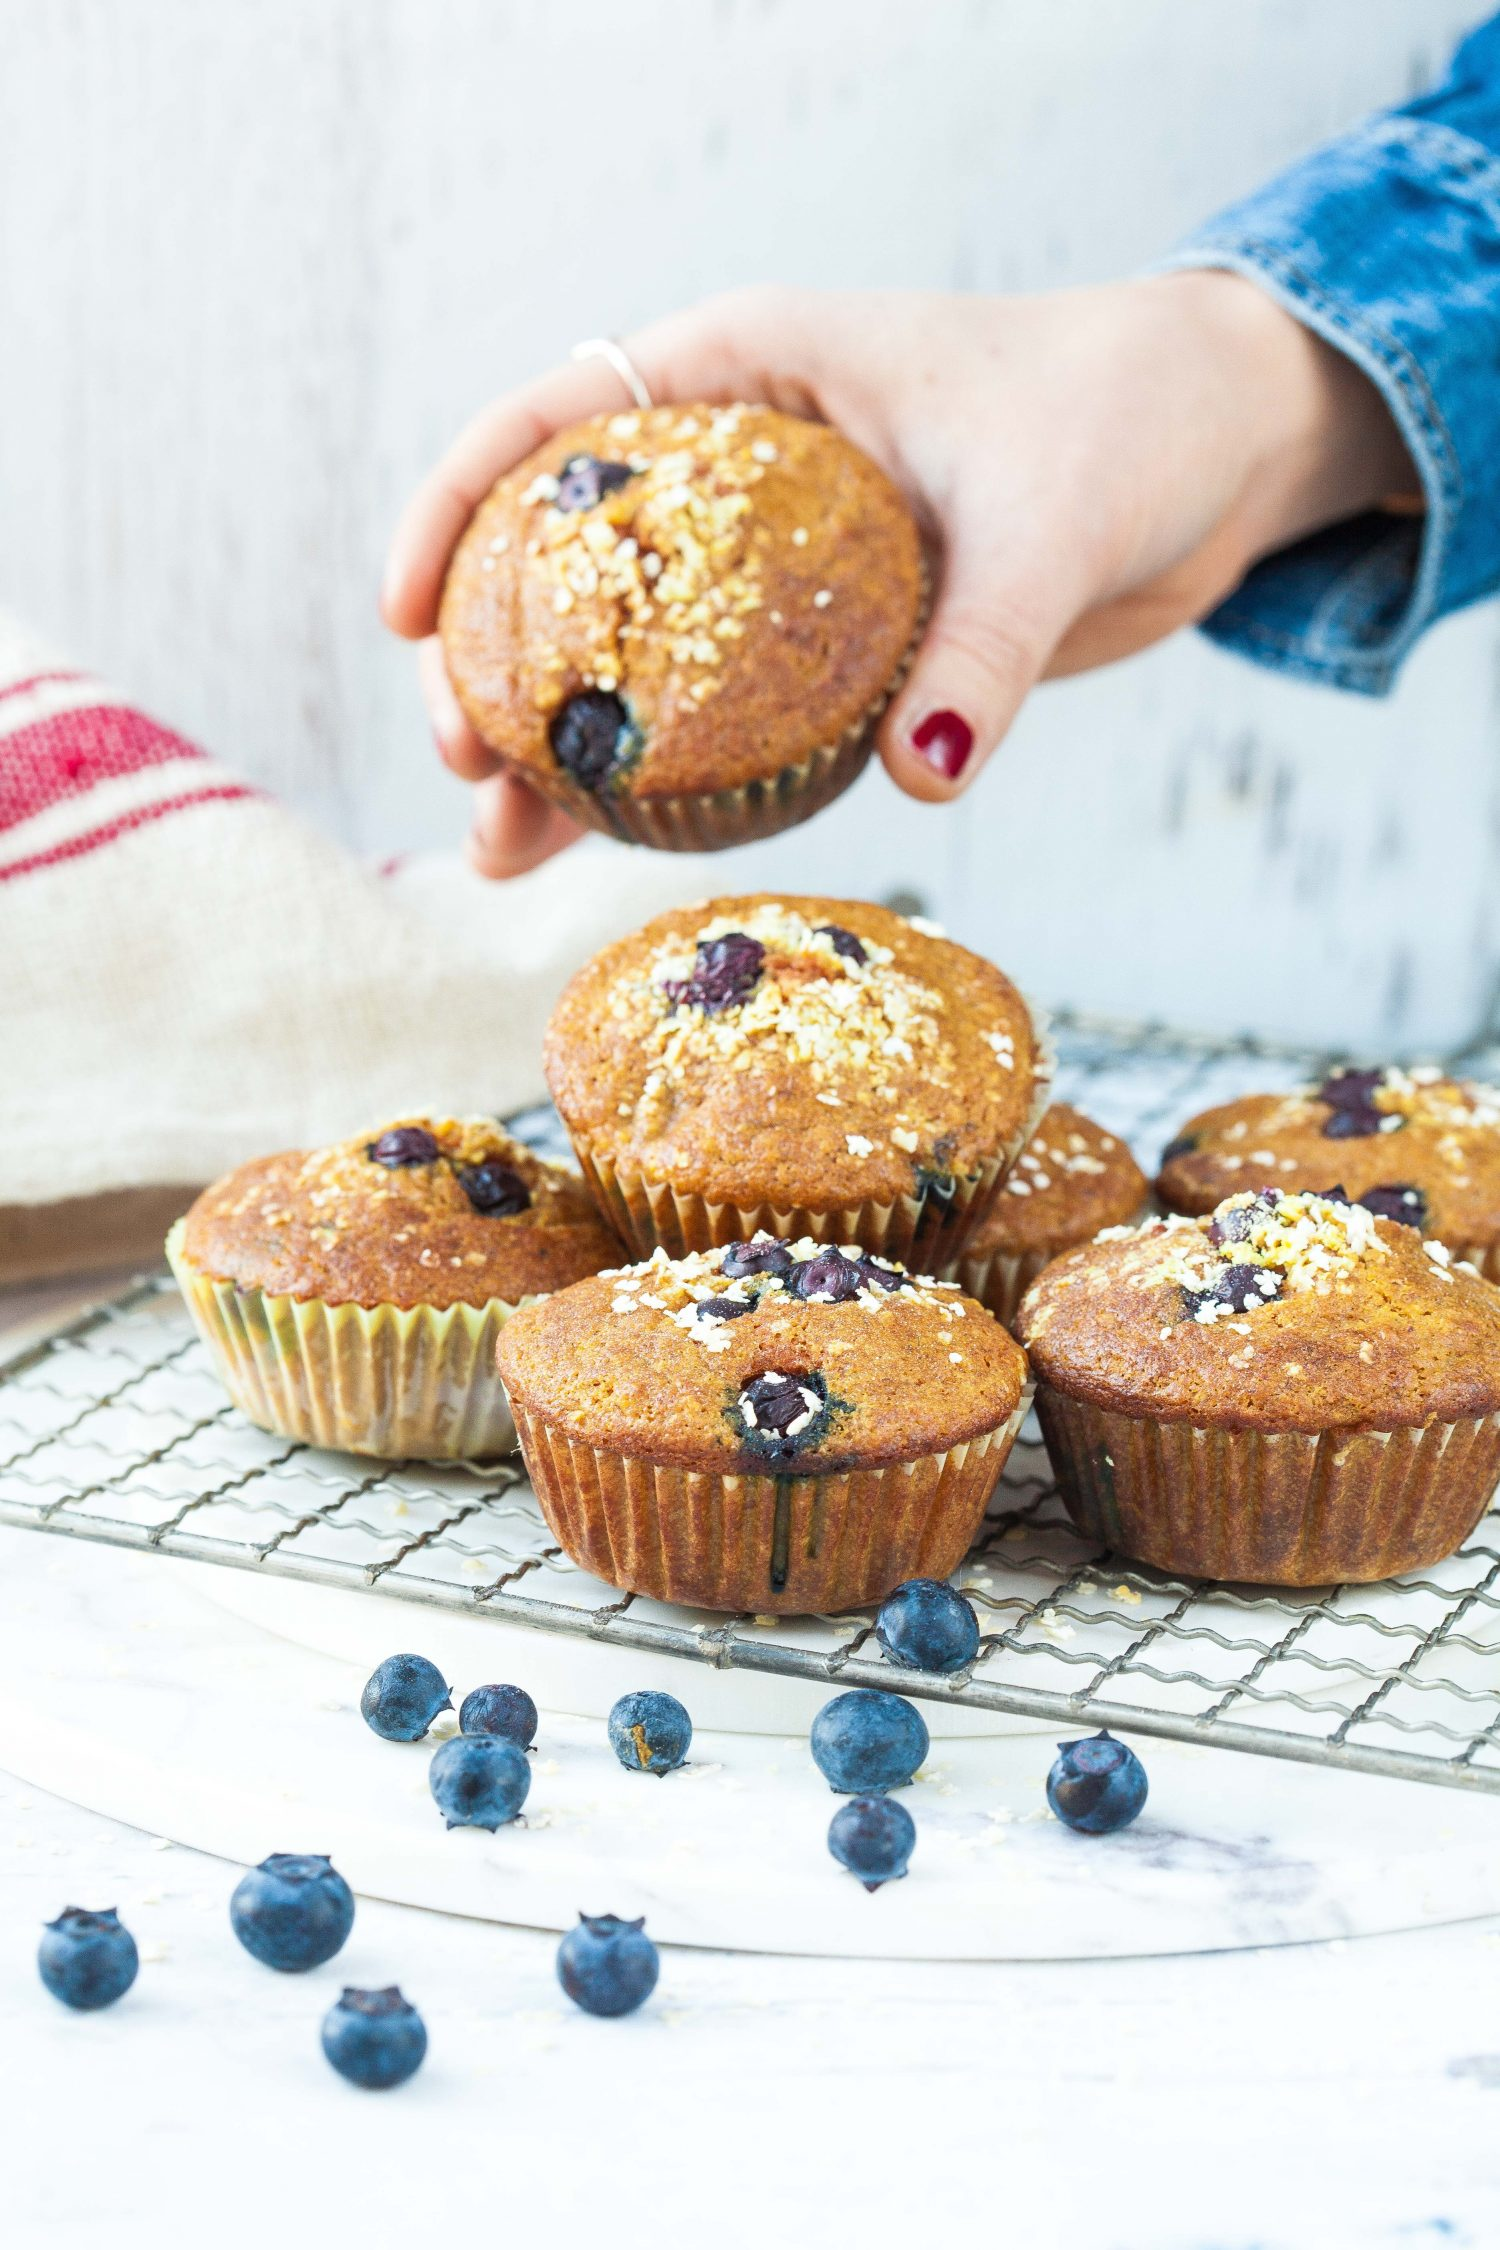 Millet and Turmeric Muffins